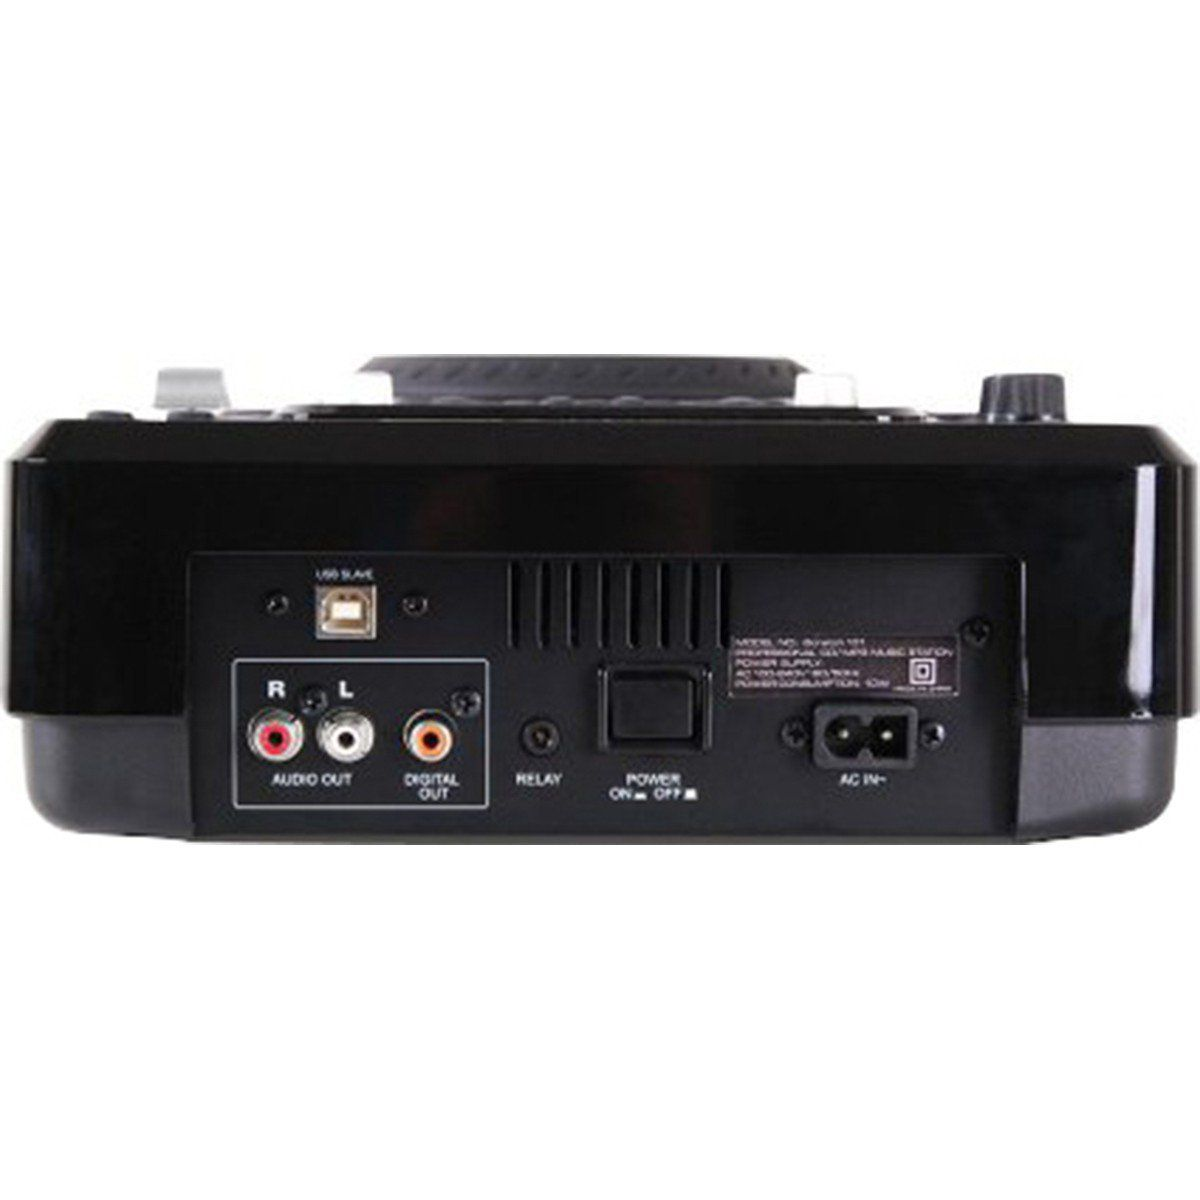 Dj-Tech iScratch 101 V2 Player USB MP3 Dj-Tech iScratch 101V2 para DJ Profissional